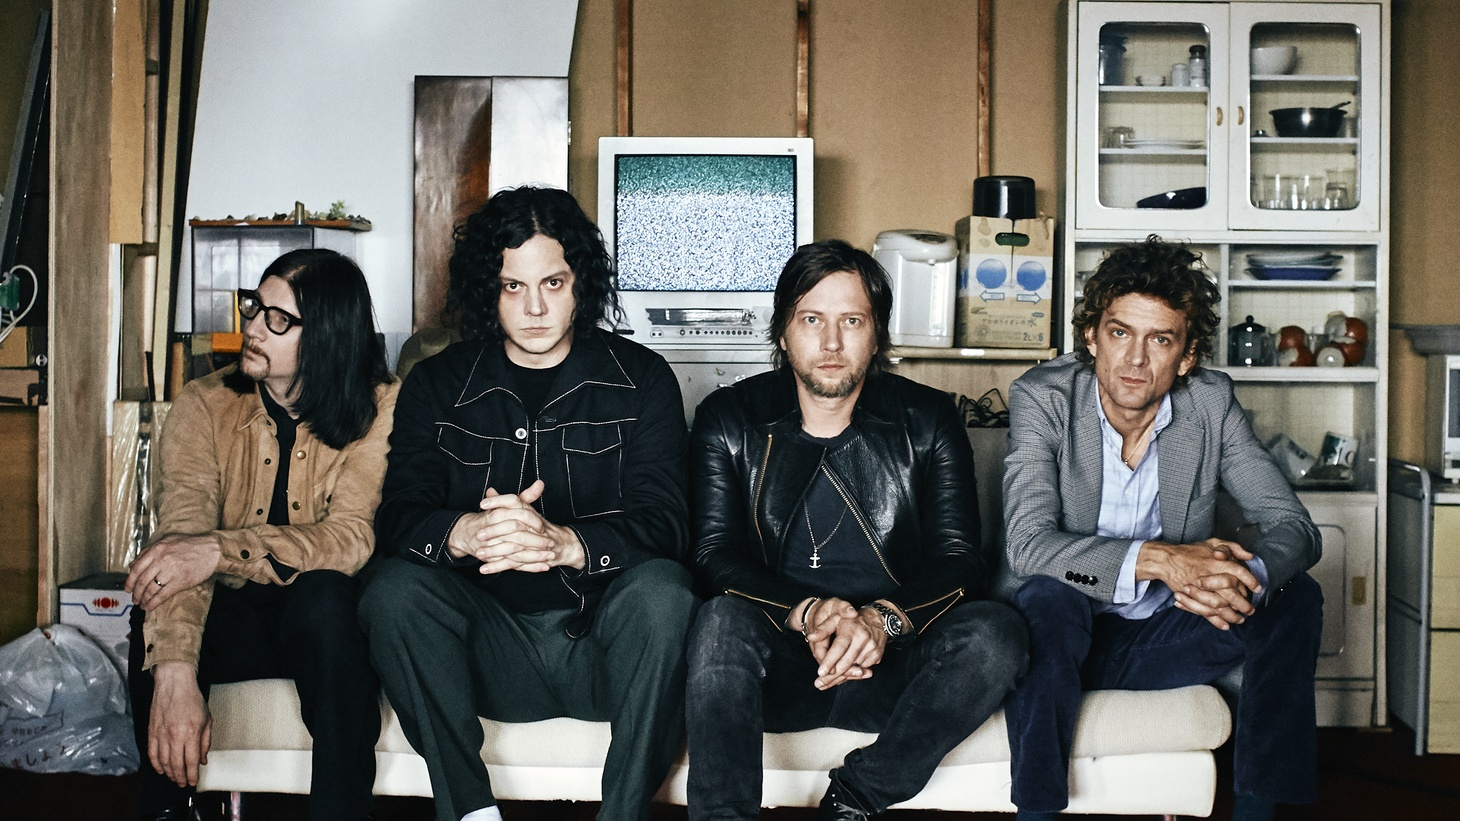 The Raconteurs return from an eleven year hiatus with their new record Help Us Stranger. We're thrilled to welcome Jack White, Brendan Benson, Jack Lawrence and Patrick Keeler for a live session at KCRW.